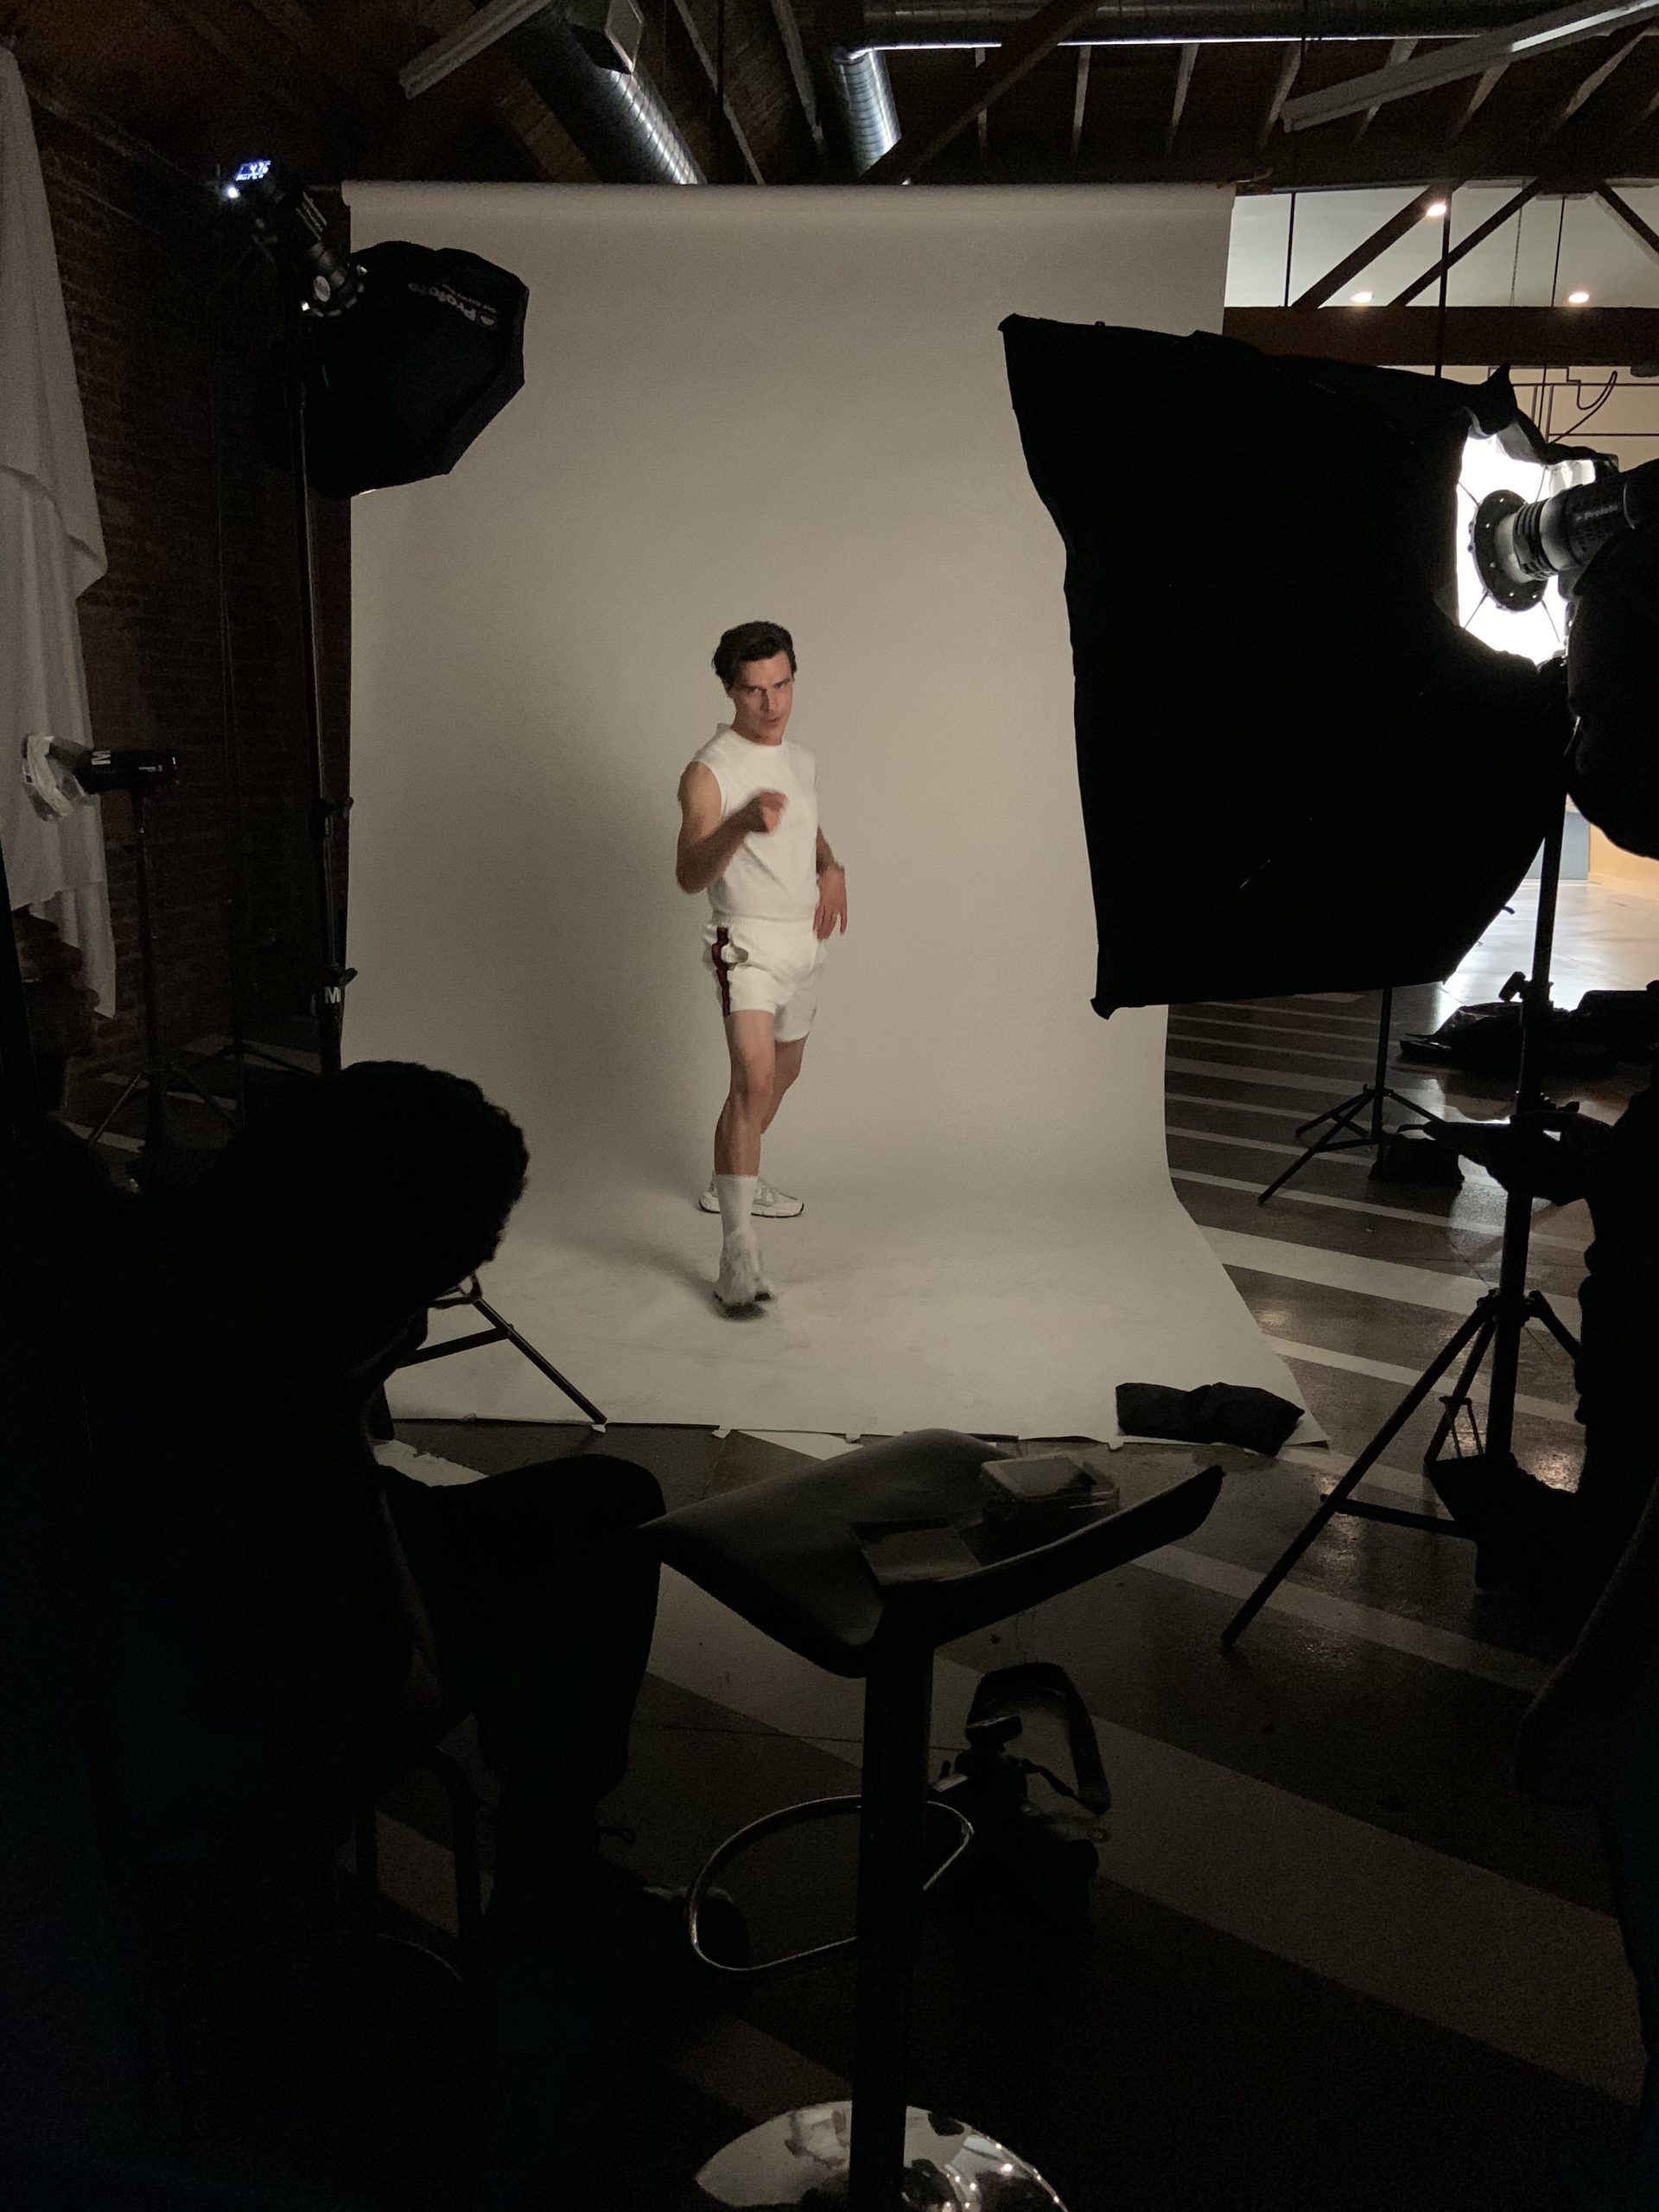 GQ Finn Whittrock Photoshoot Behind-the-Scenes Fitness Suit